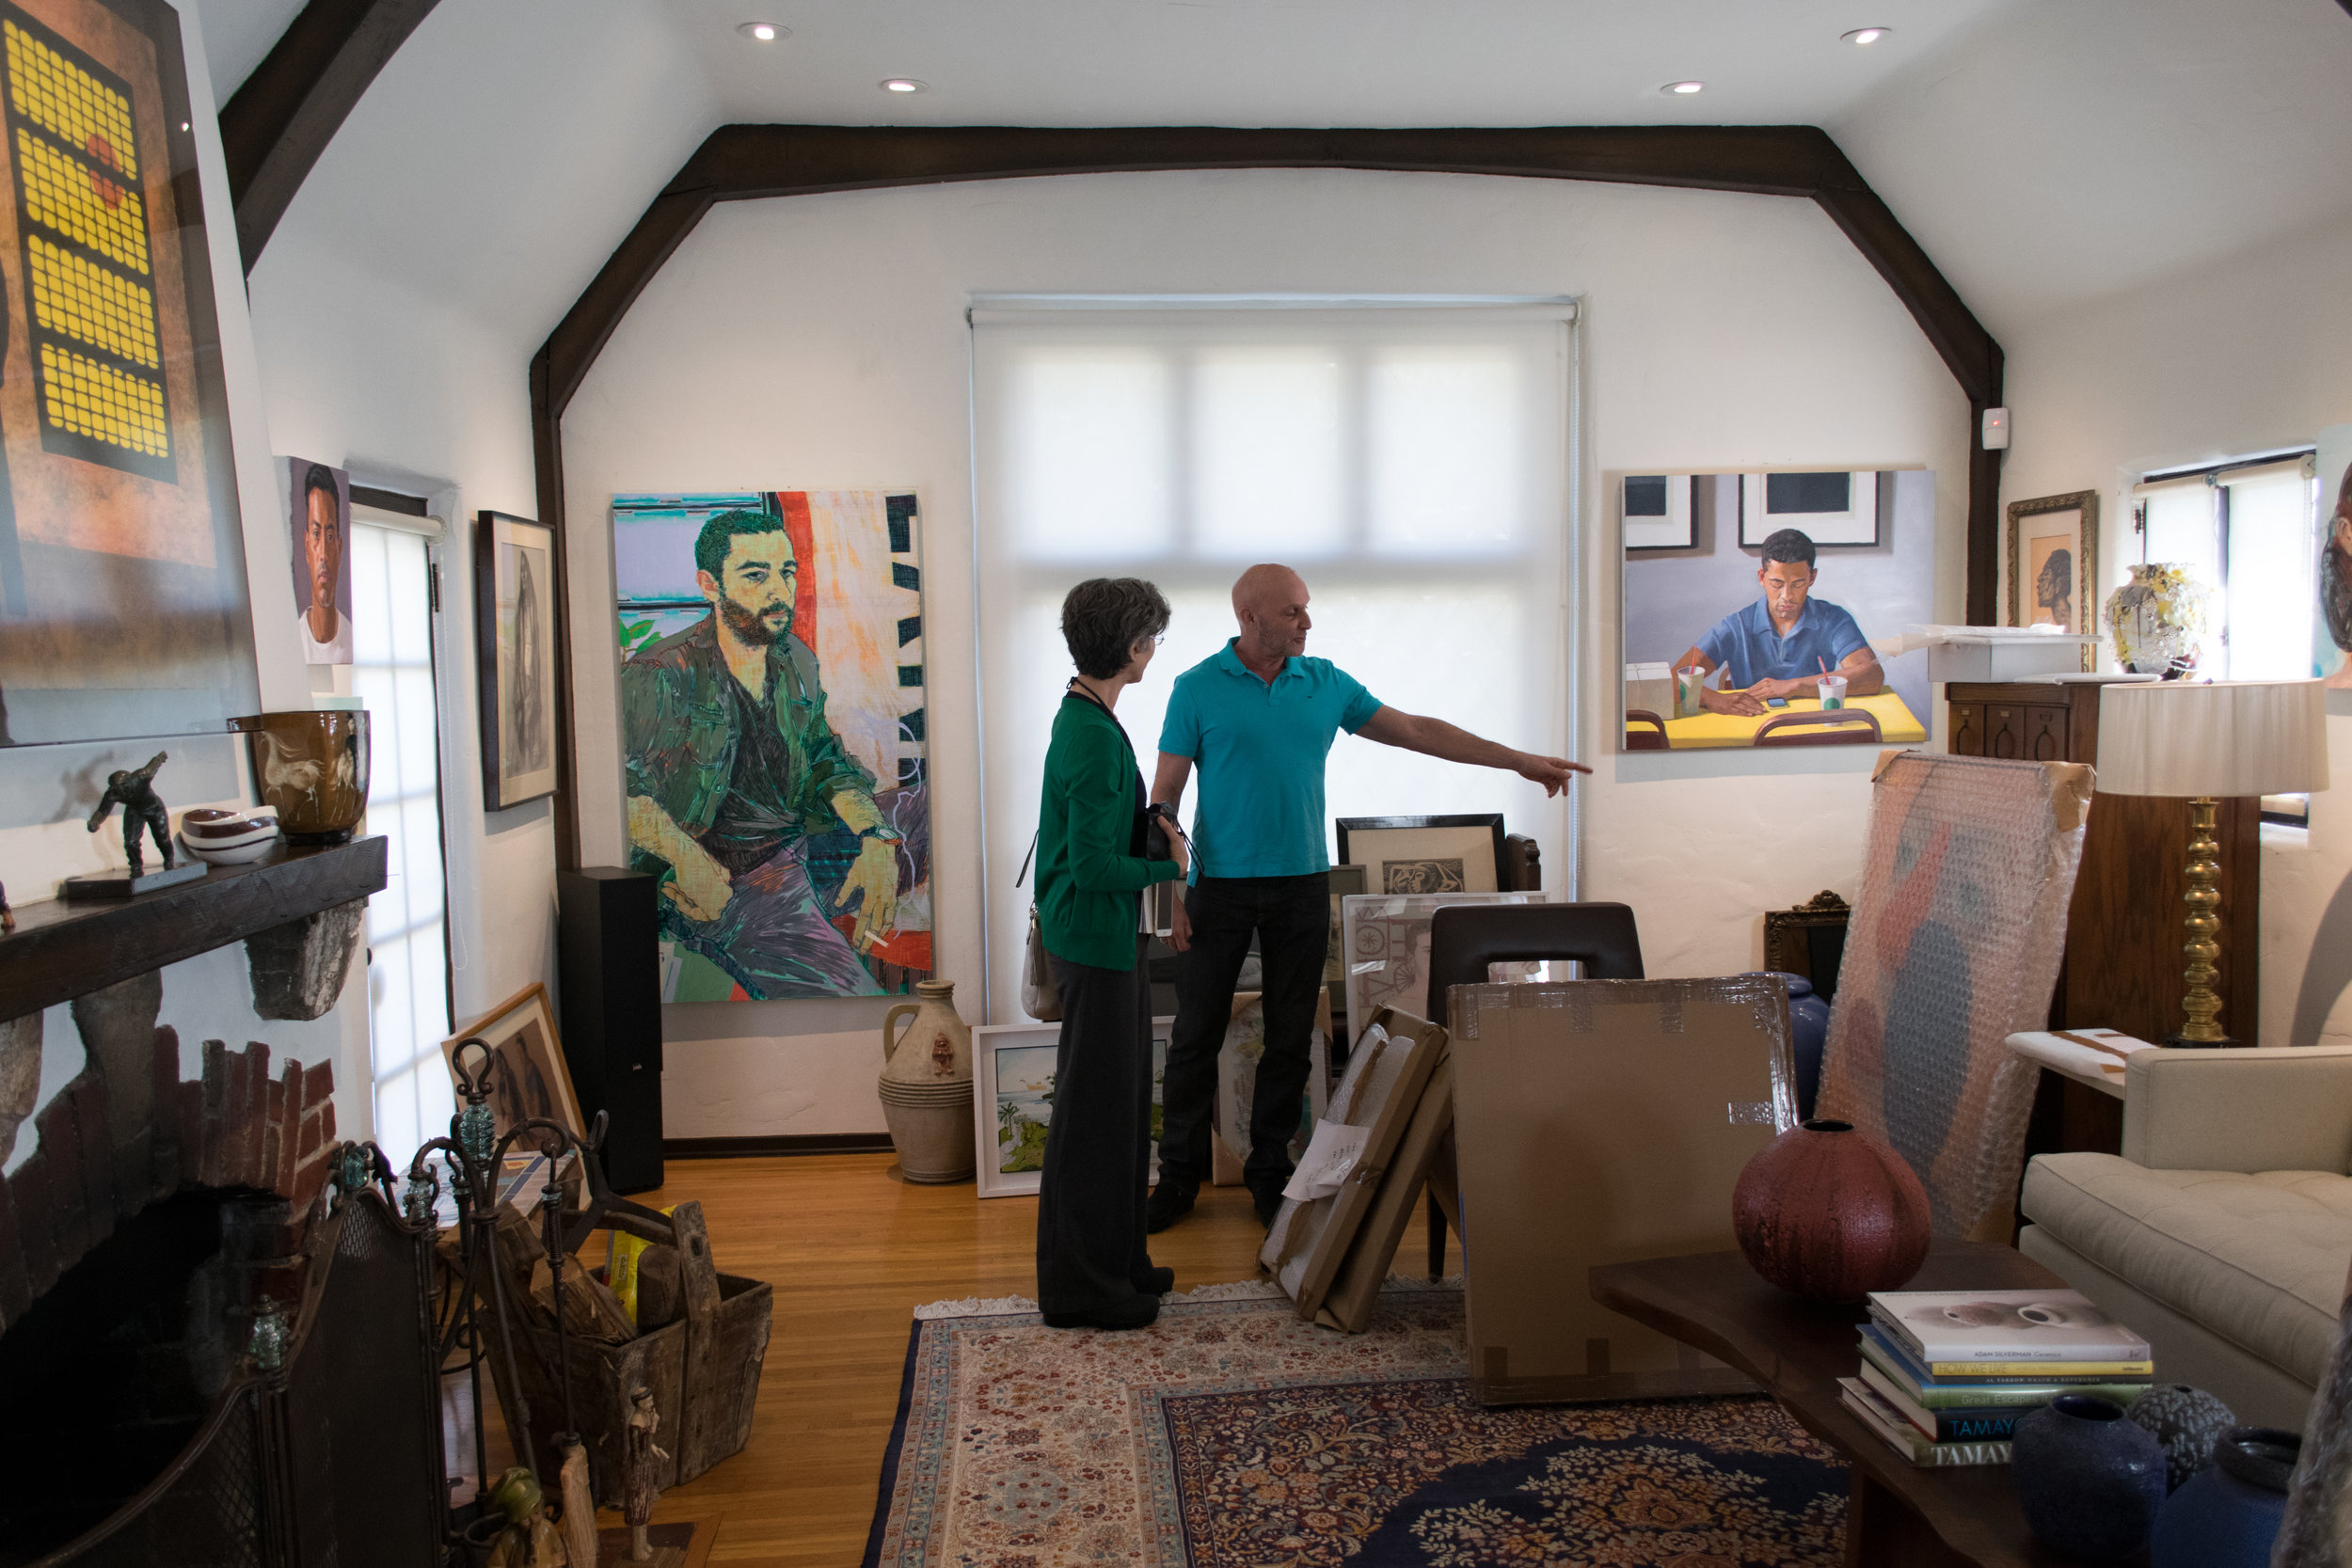 Daena Title standing next to Robert as he points to new work he has not yet unpacked.Behind on the walls are works by, at left, Hope Gangloff, and at right, Dan McCleary.